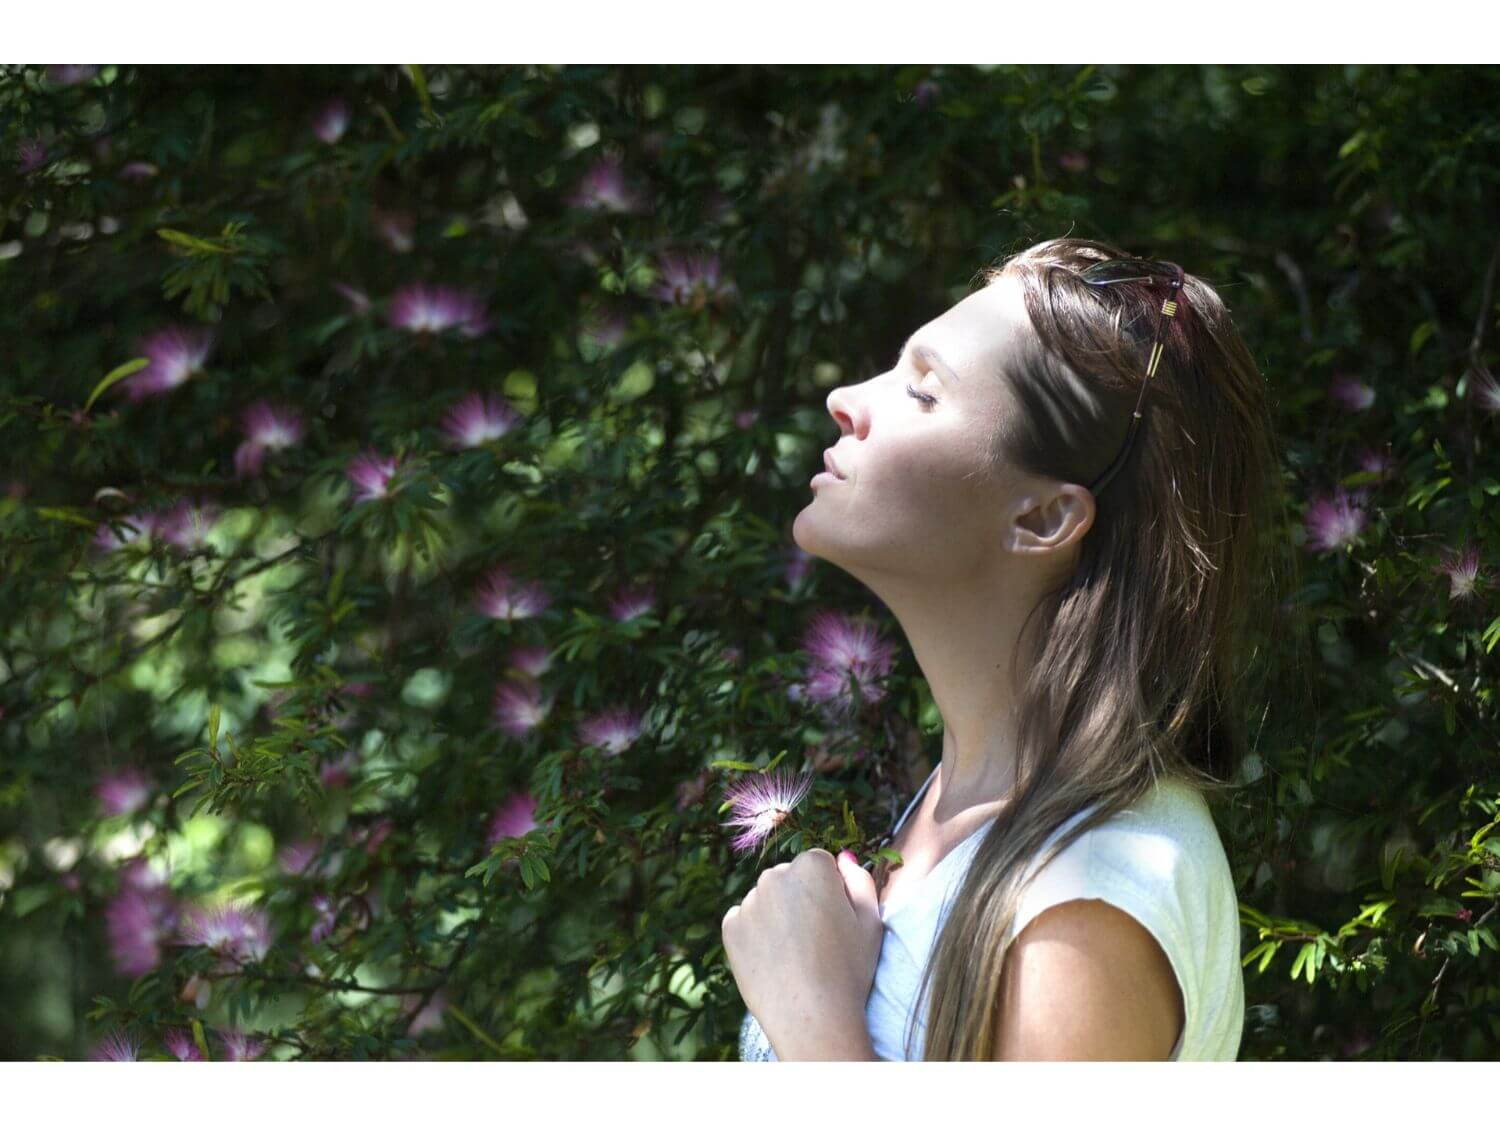 5 breathing exercises for instant calm